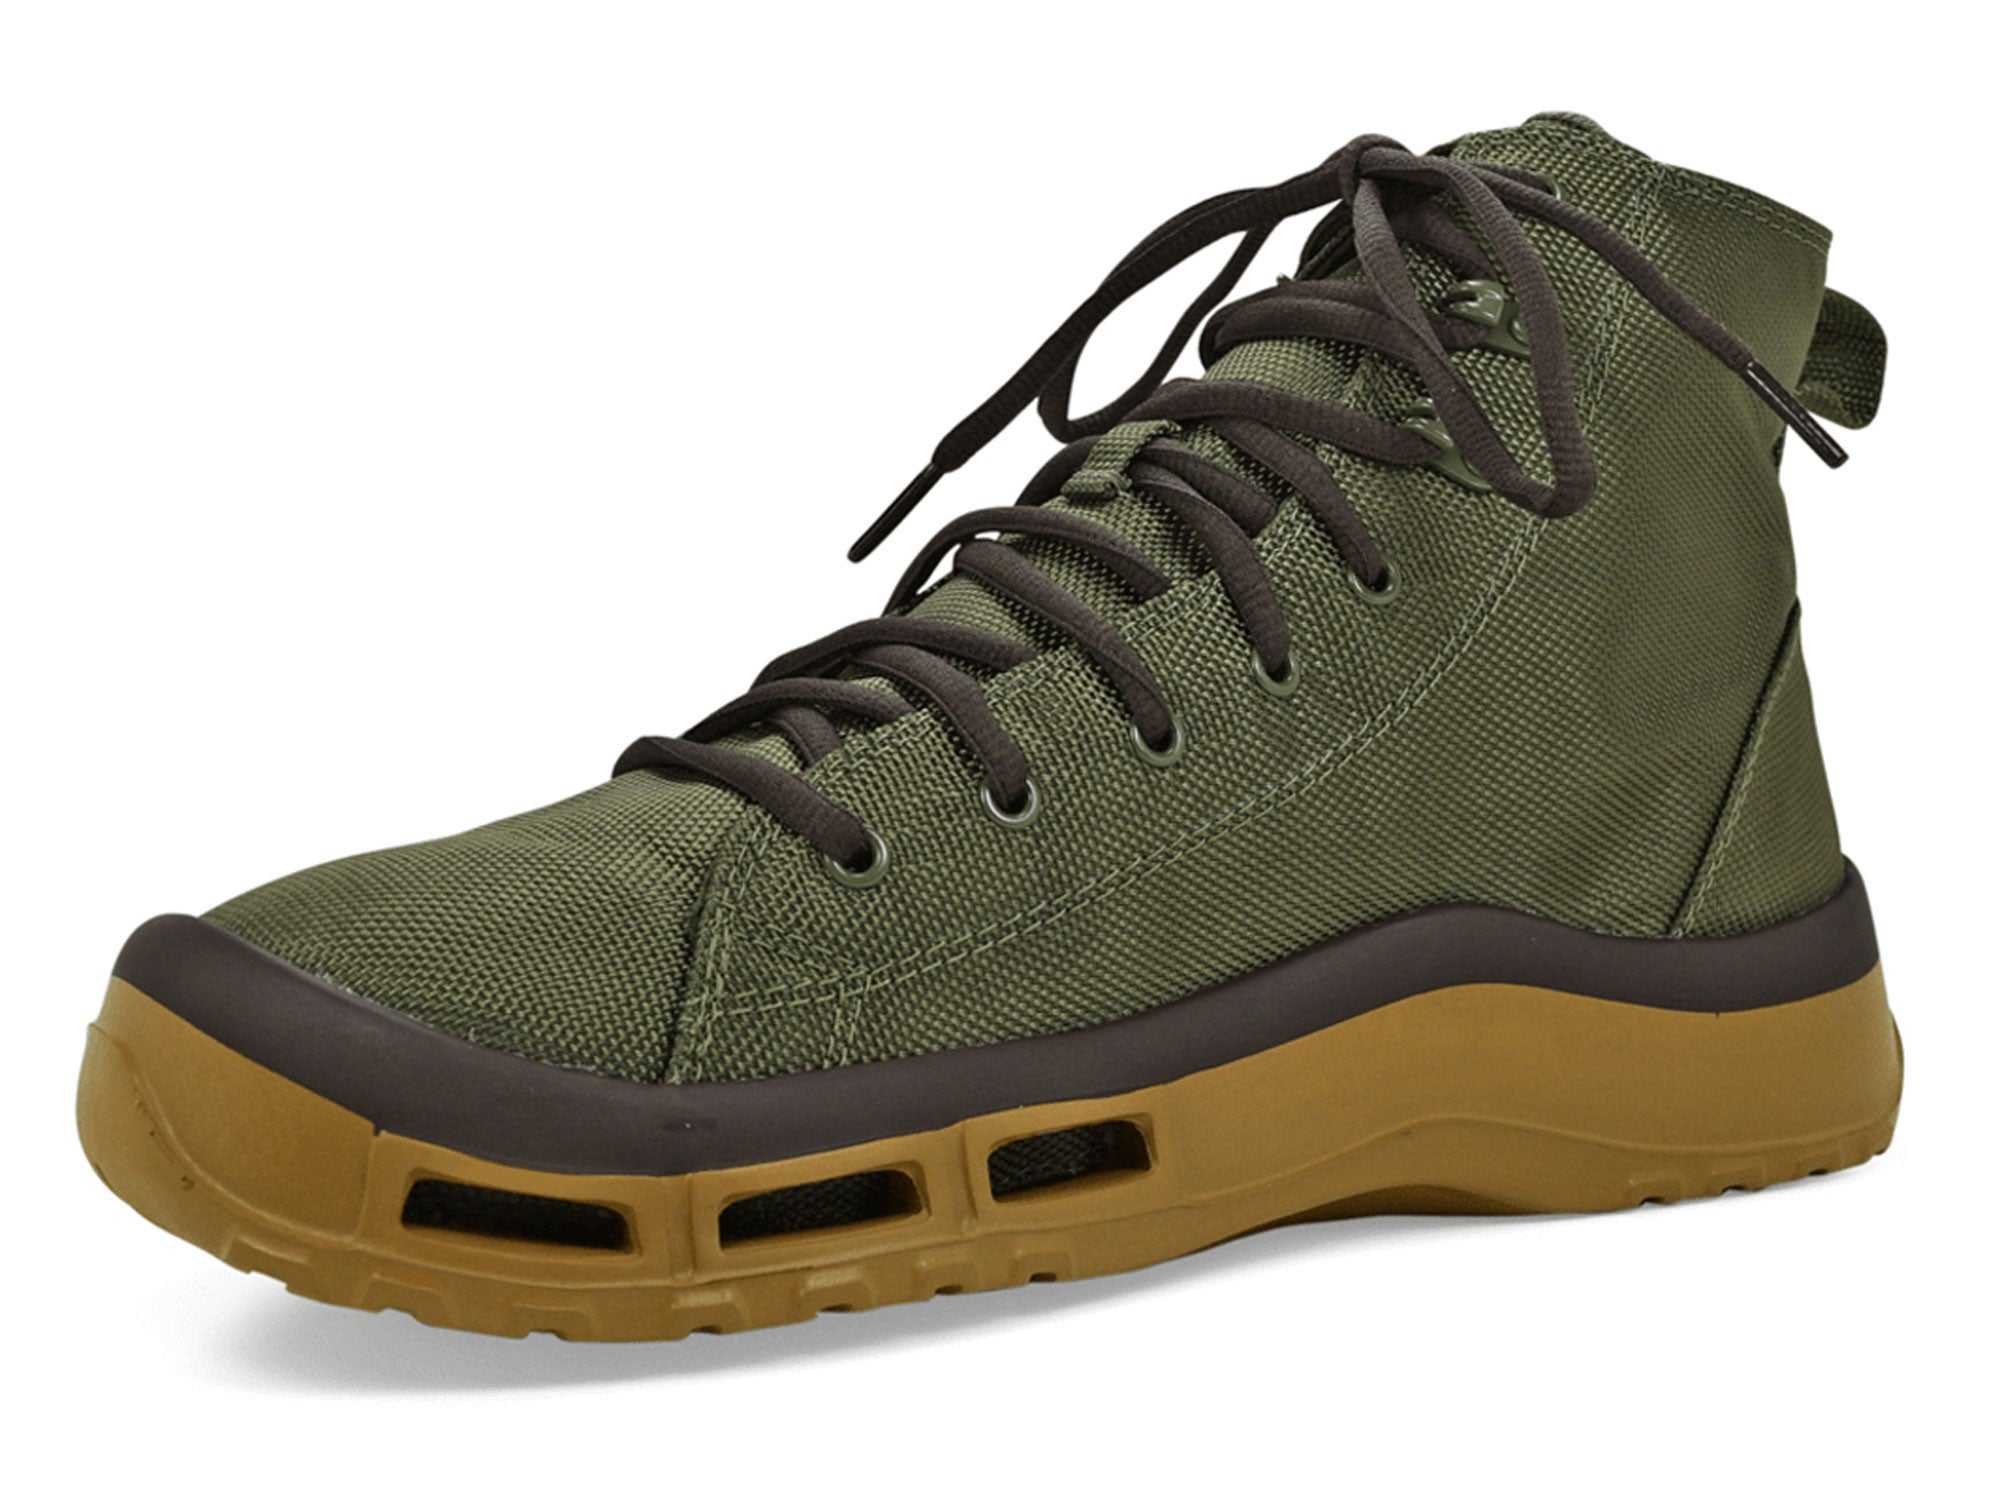 Soft Science wading boot